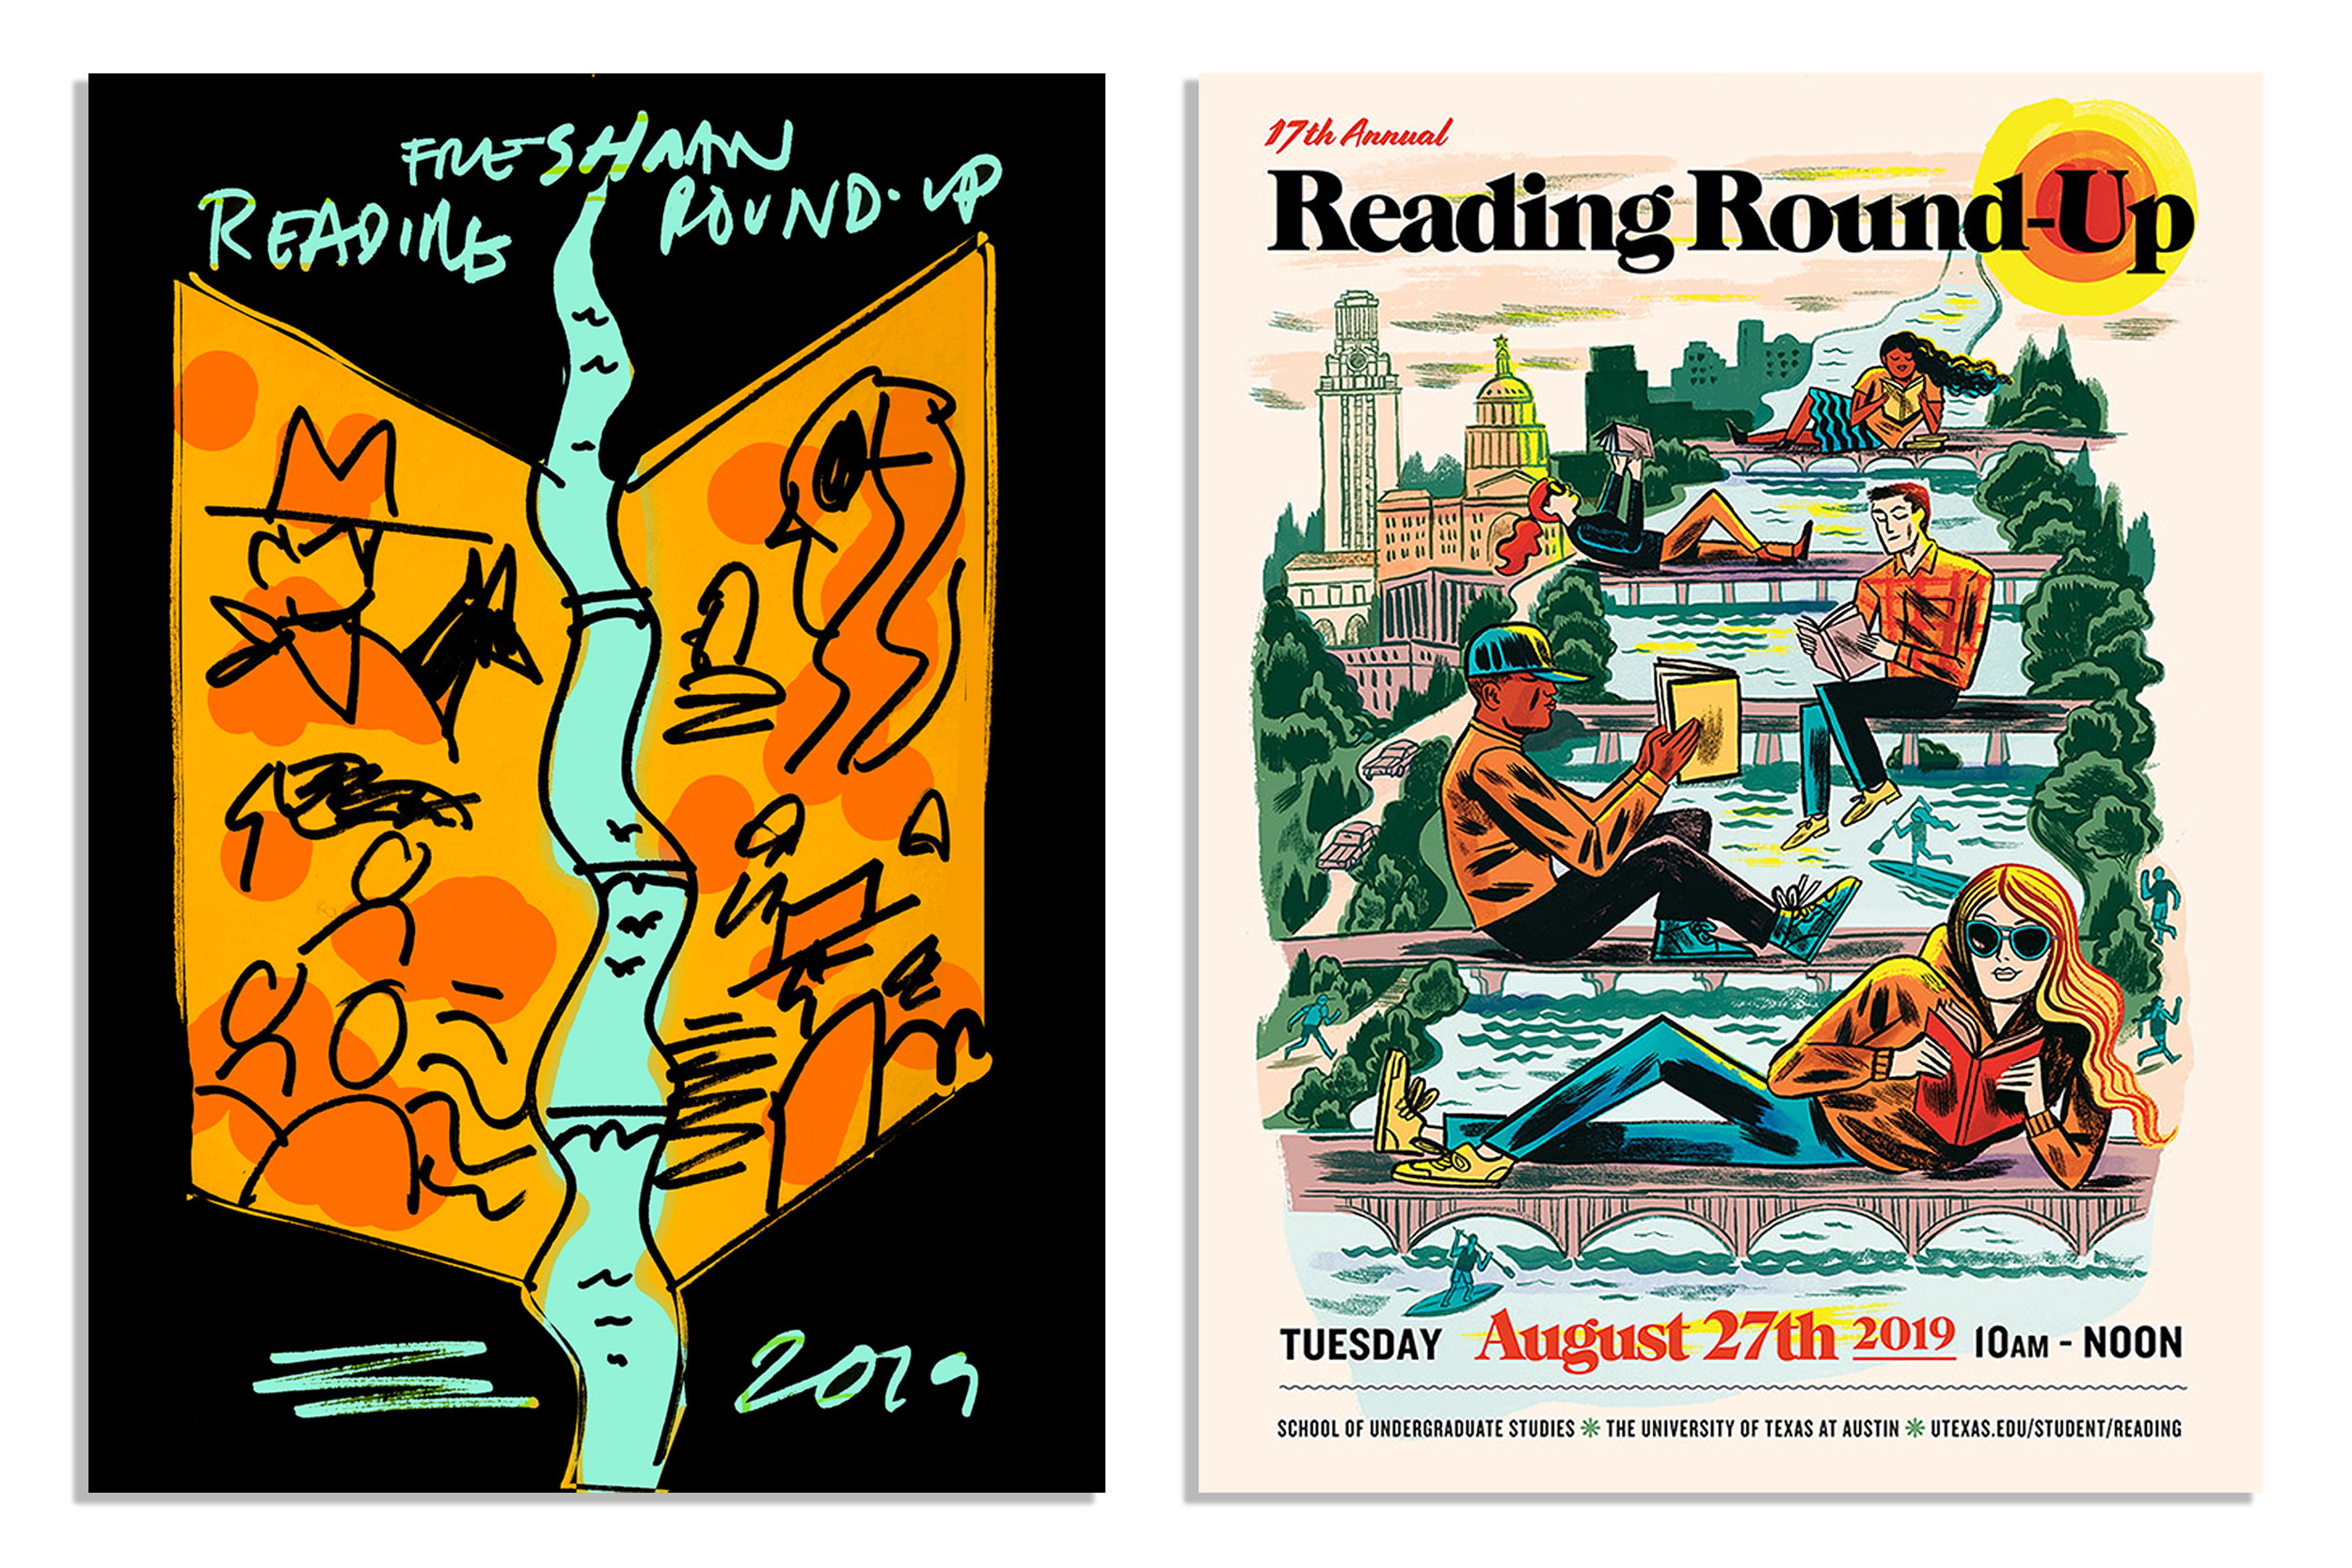 Reading Round-Up Artwork